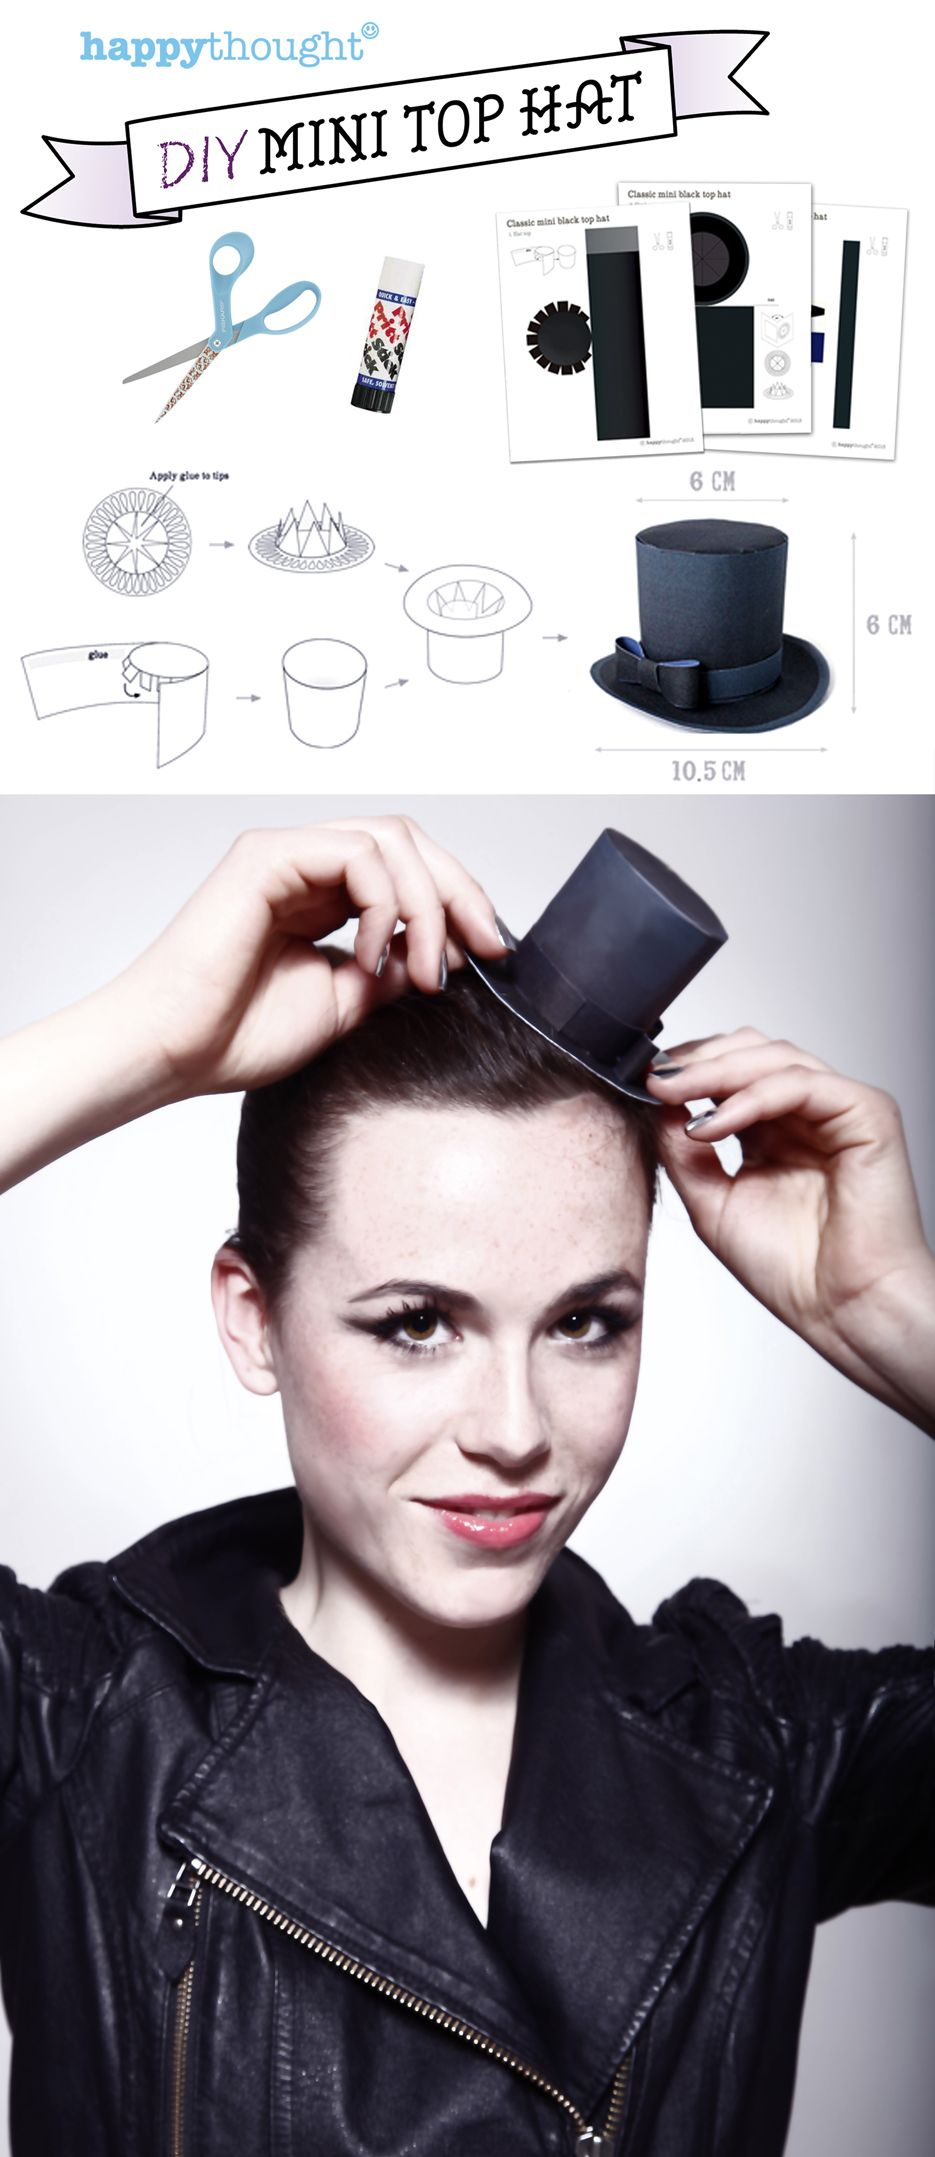 8 fantastic mini top hat template designs to download and print